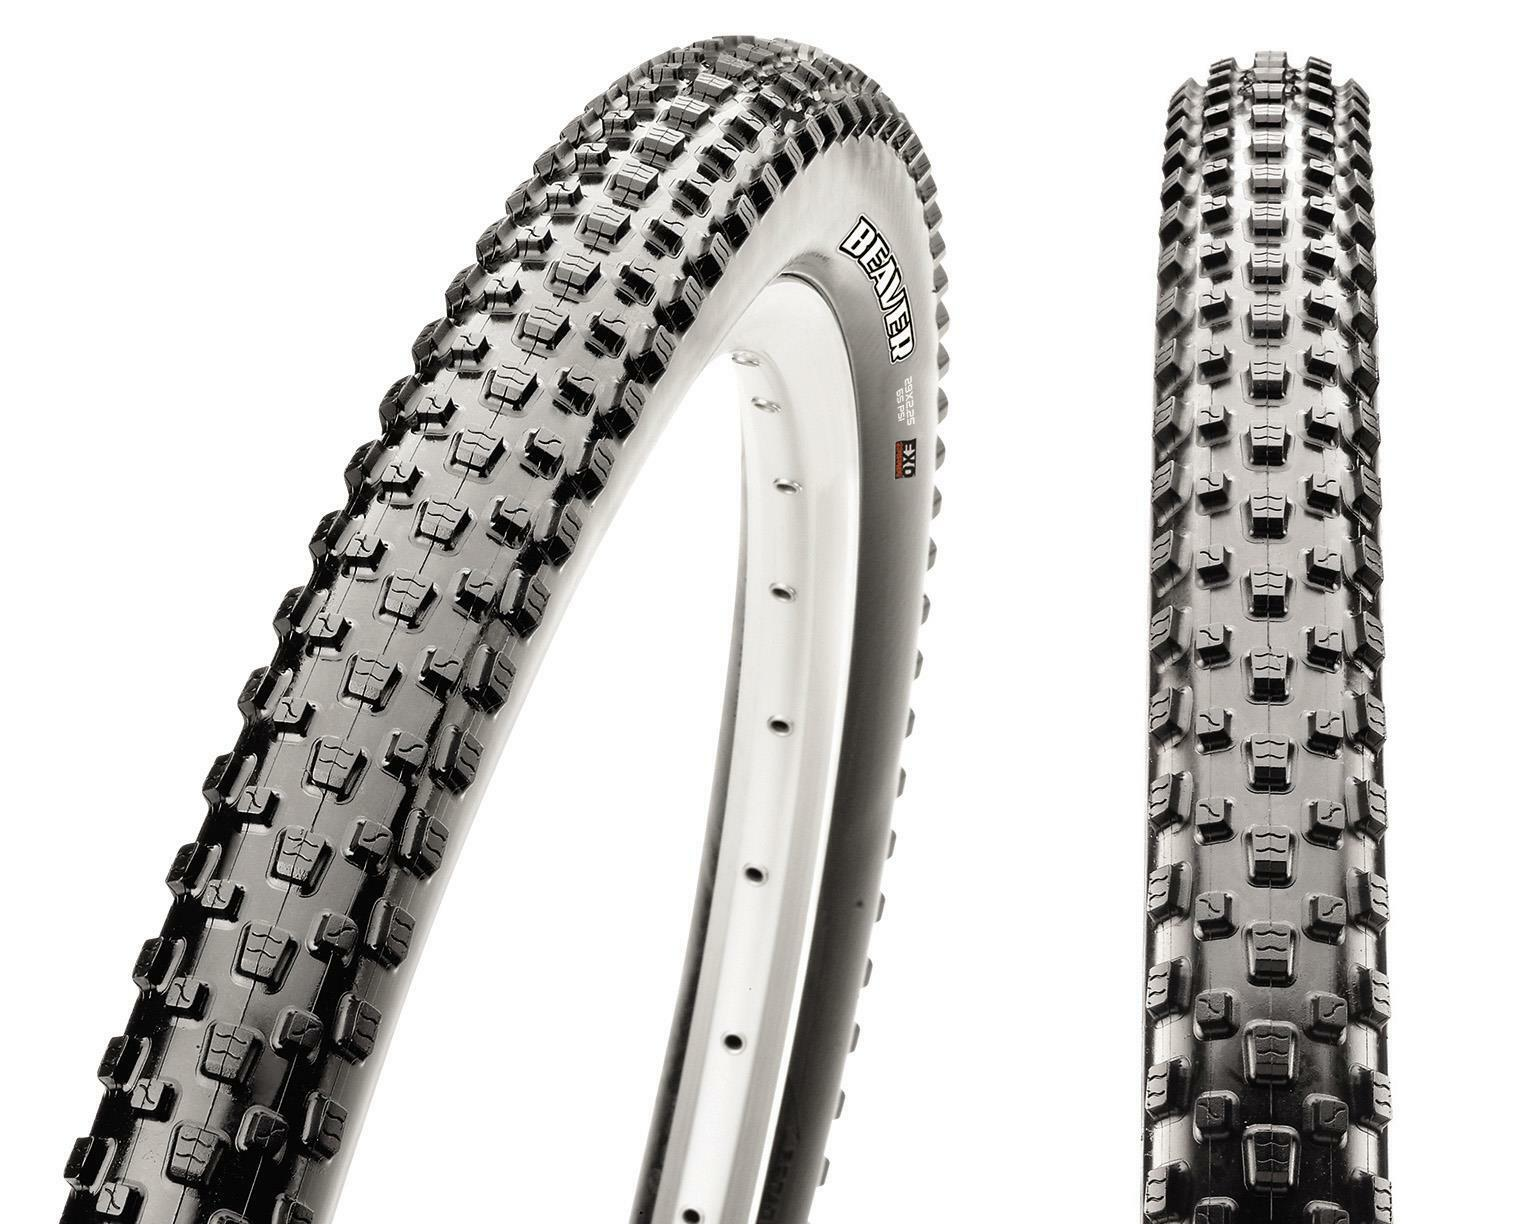 MAXXIS Beaver 29x2.00 120TPI Foldable TR   EXO Dual  600g  save up to 30-50% off